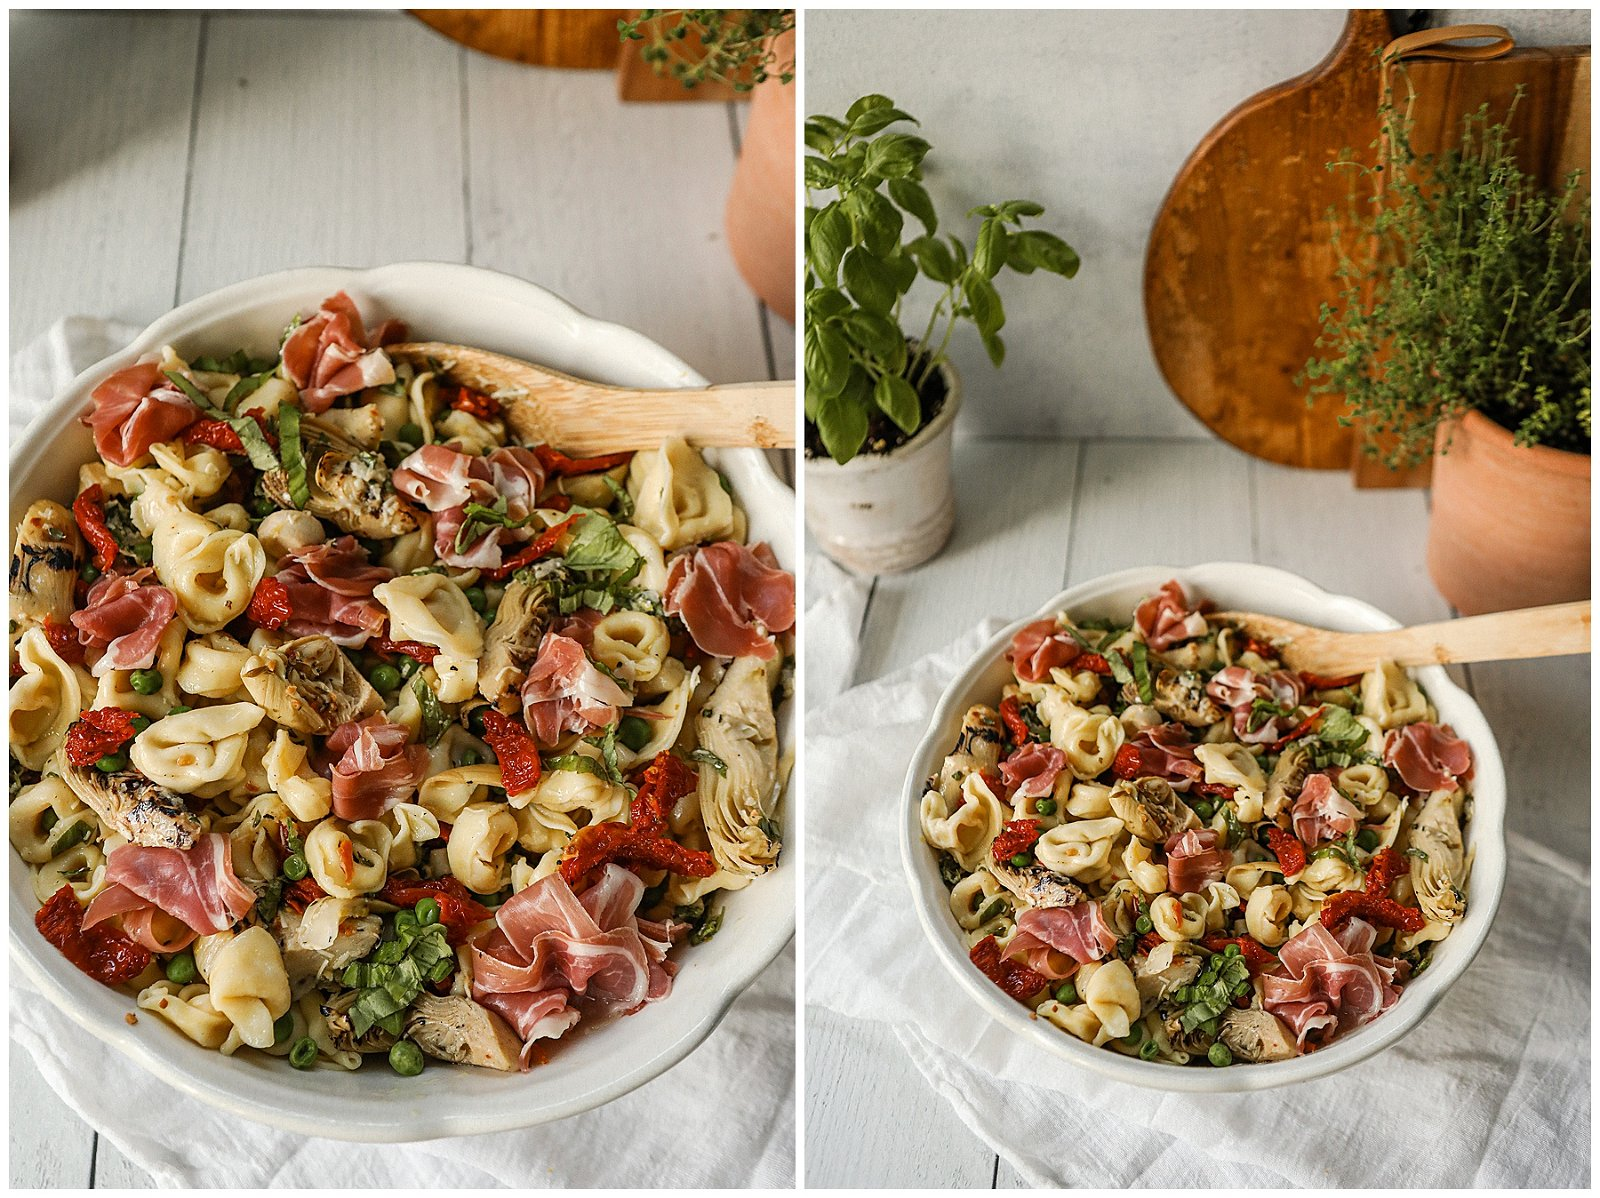 Tortellini Pasta Salad with sun-dried tomatoes and prosciutto